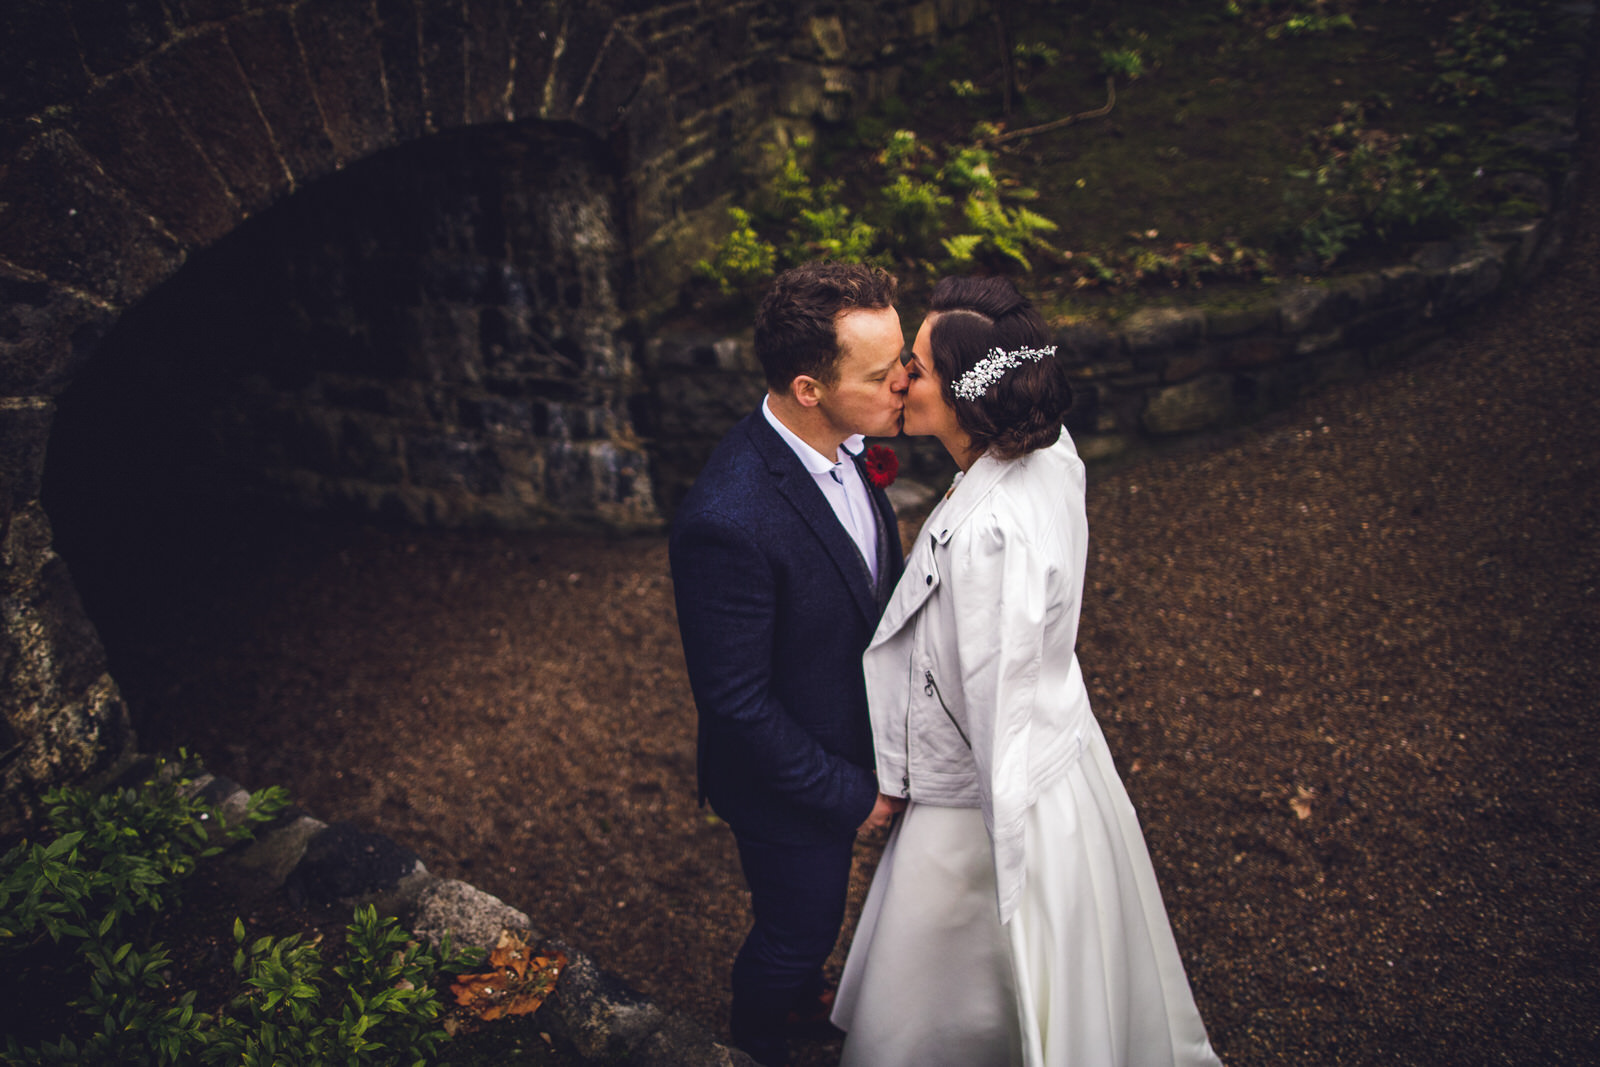 wicklow-wedding-photographer-roger-kenny-portrait-room-clonabreaney-house_104.jpg